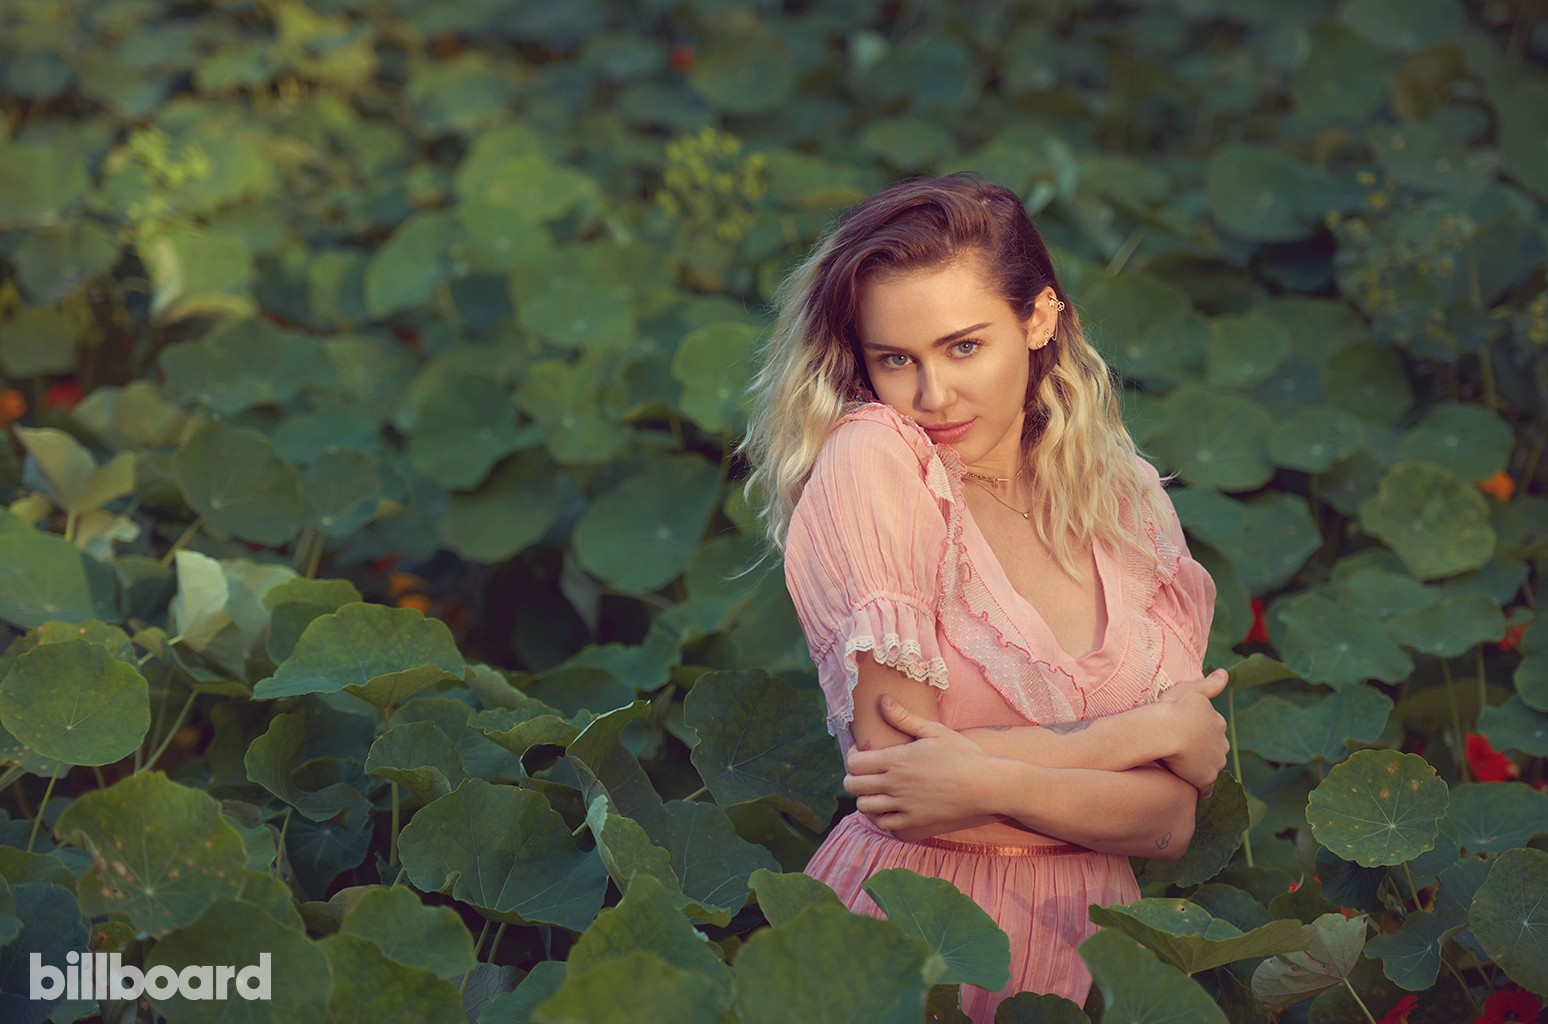 Miley Cyrus photographed April 8, 2017 in Malibu.